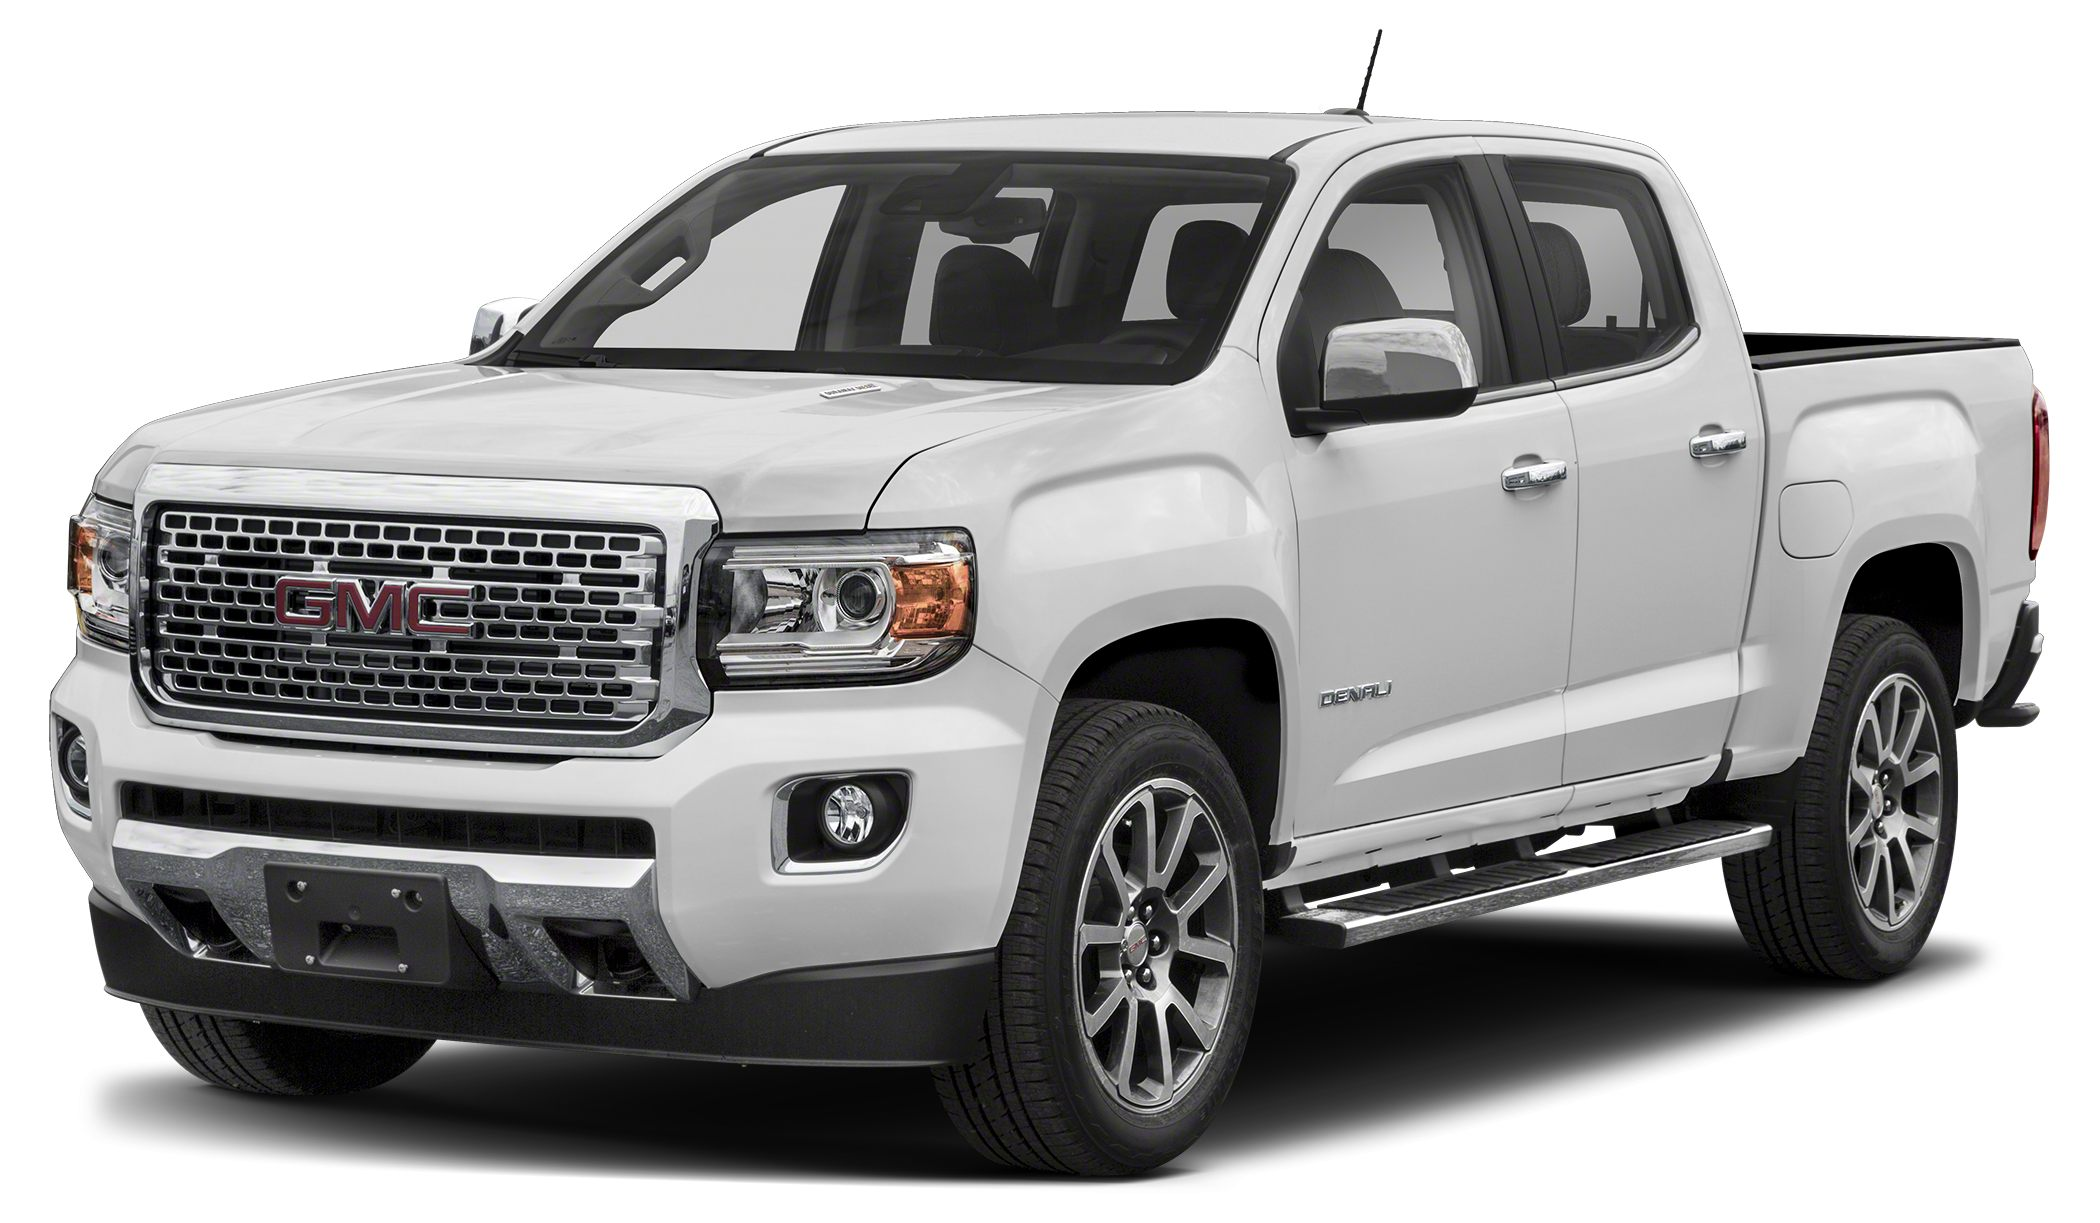 2018 GMC Canyon Denali For a top driving experience check out this 2018 GMC Canyon Denali with a